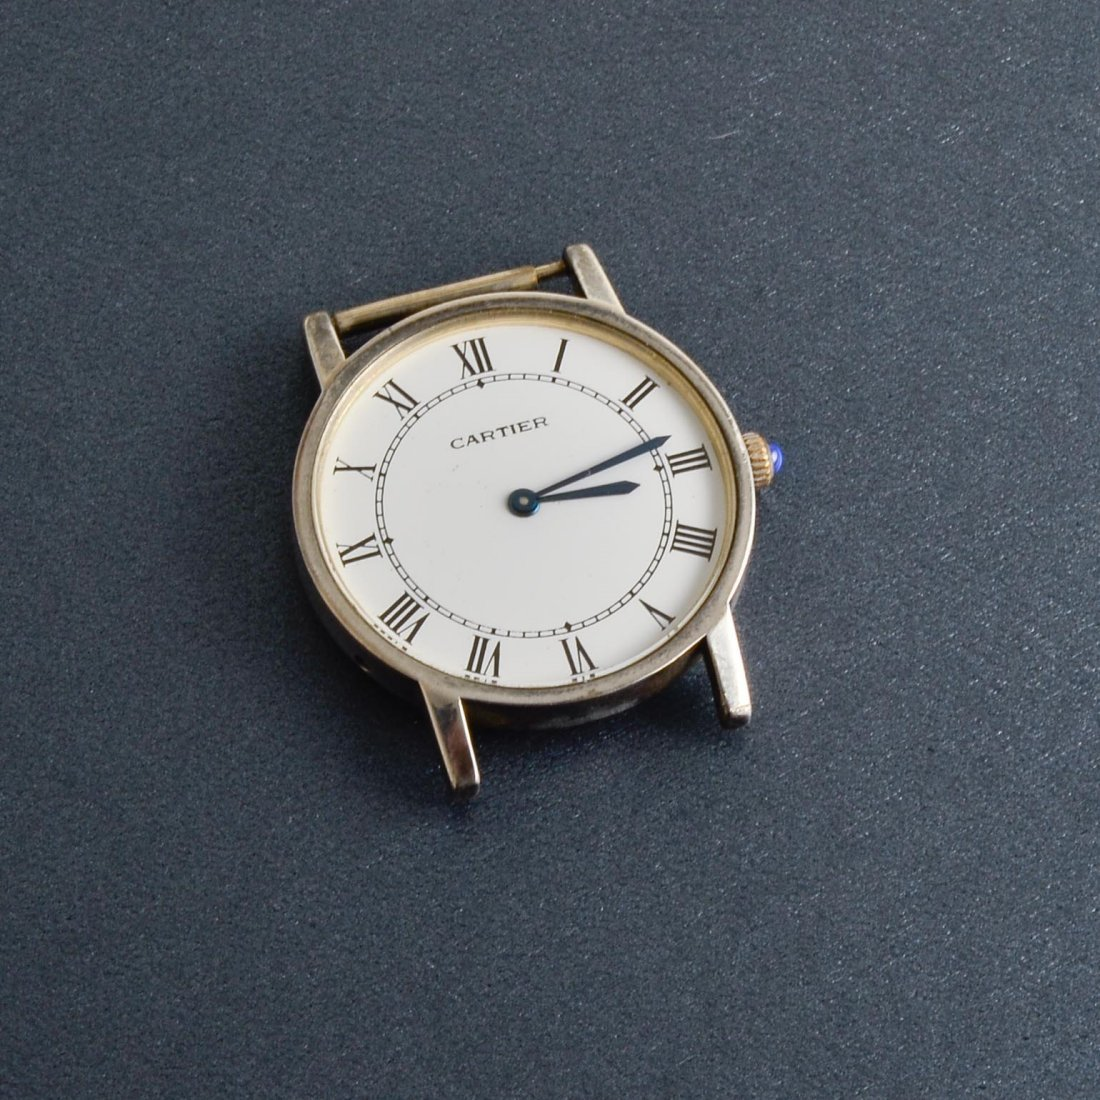 Cartier Woman's Round Silver Watch